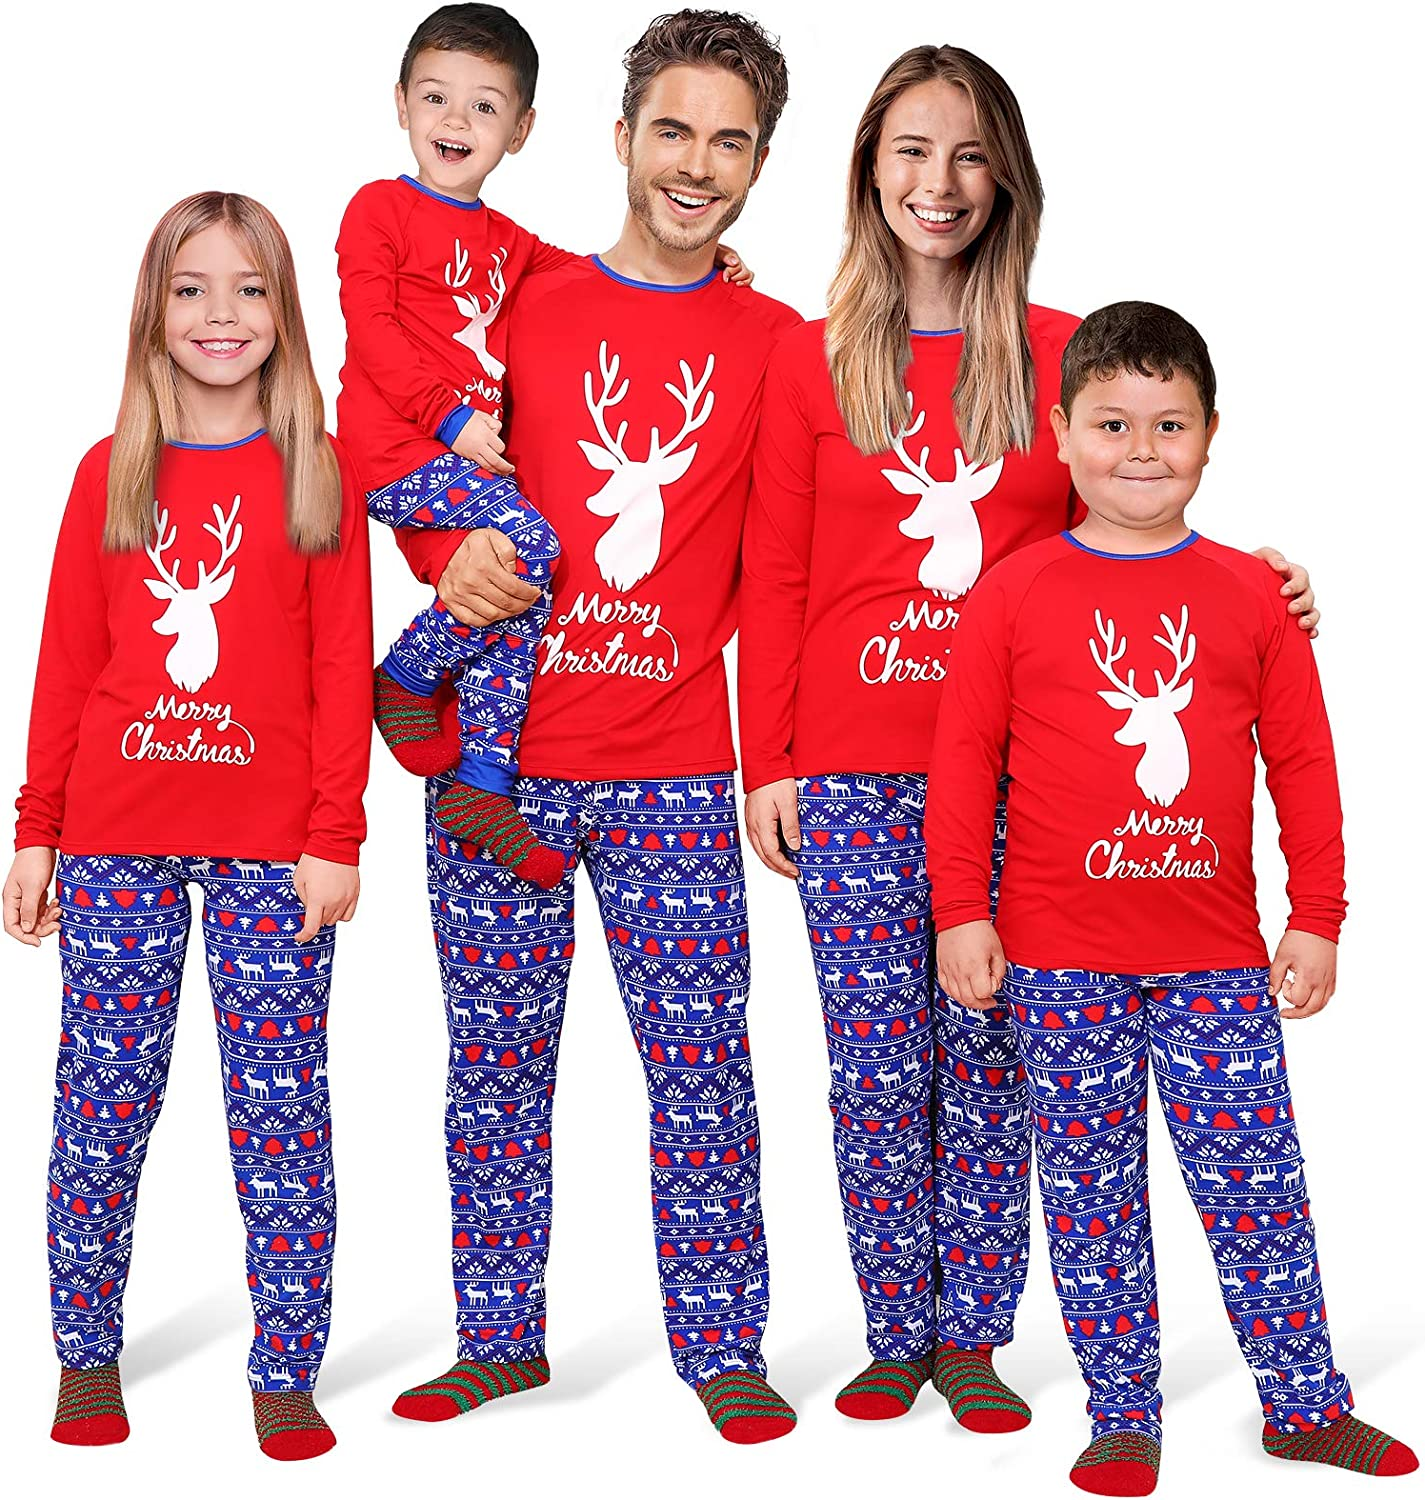 Rnxrbb Limited time sale Max 48% OFF Christmas Family Pajamas Matching Pjs for Sets